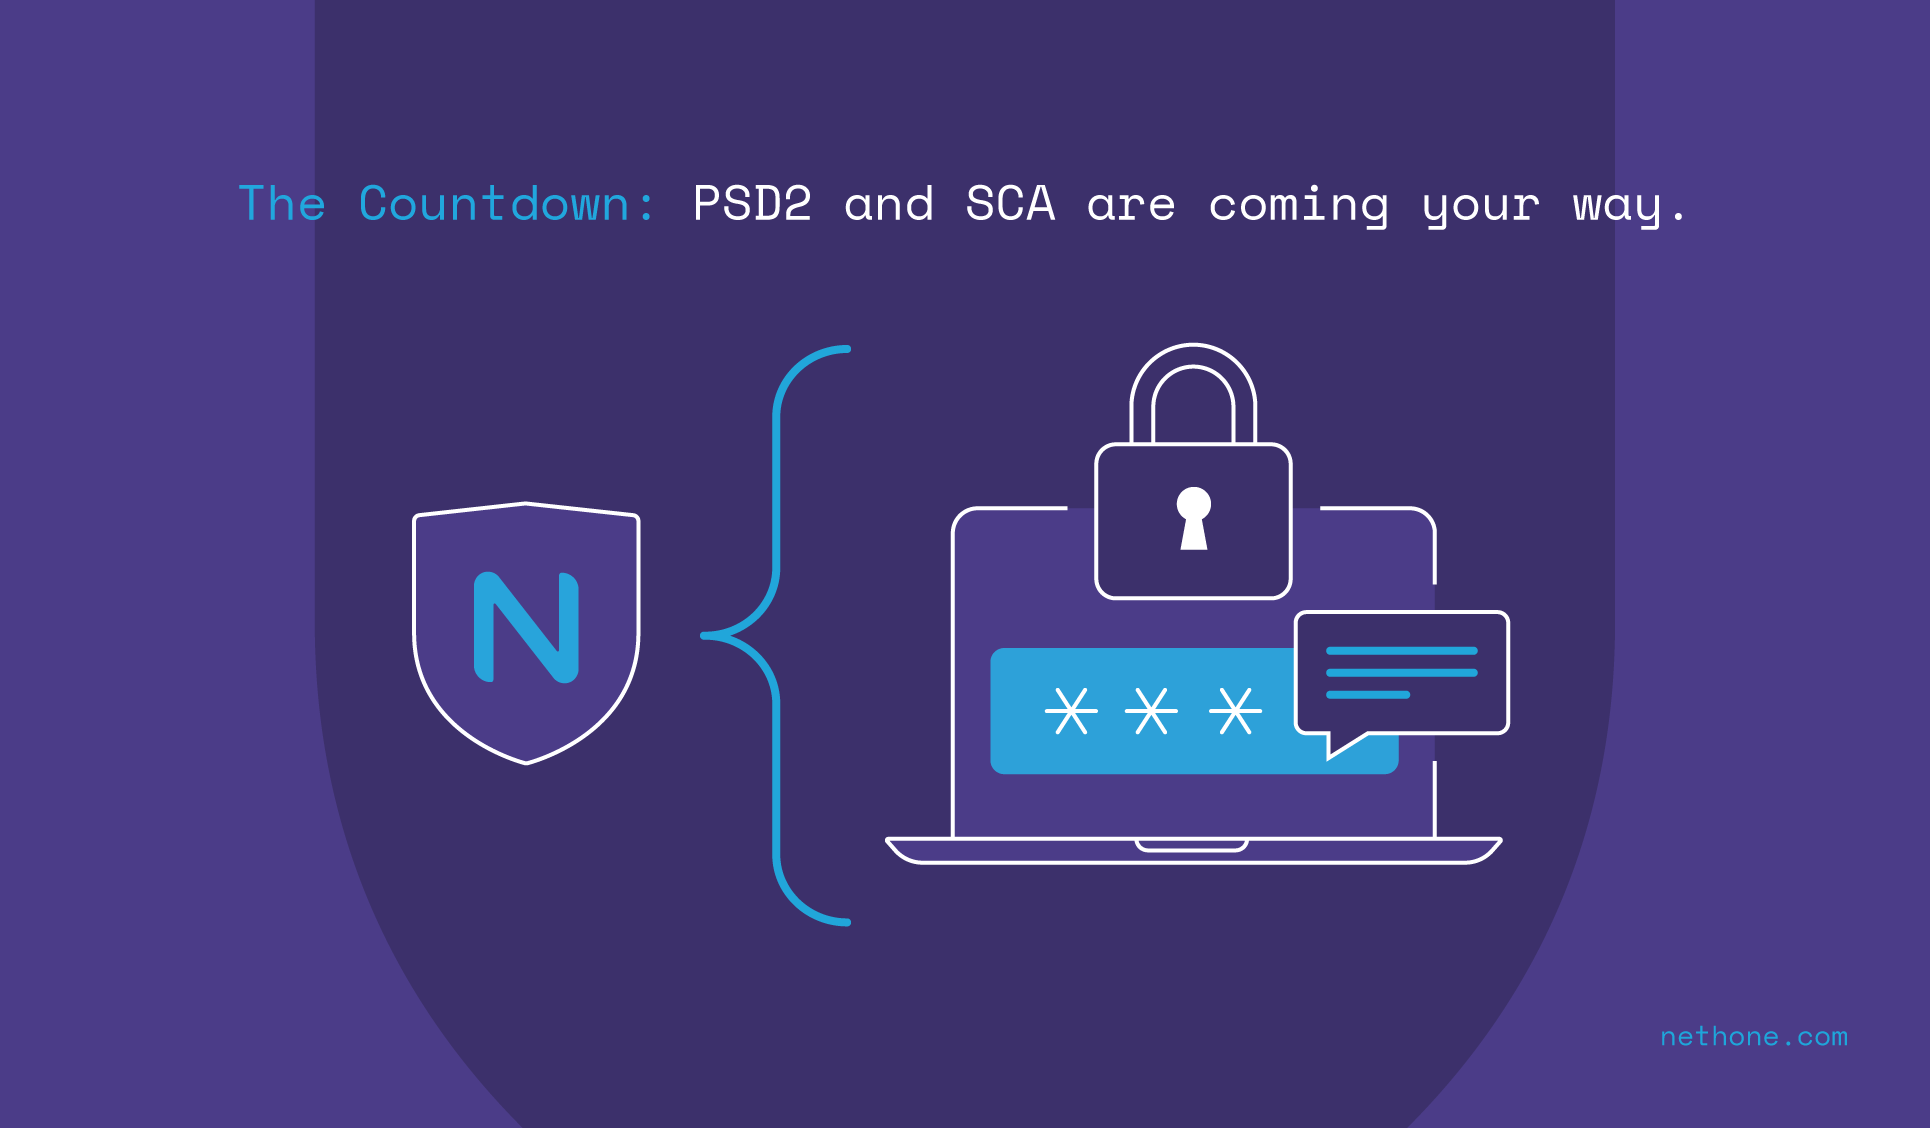 countdown PSD2 and SCA ARE COMING YOUR WAY